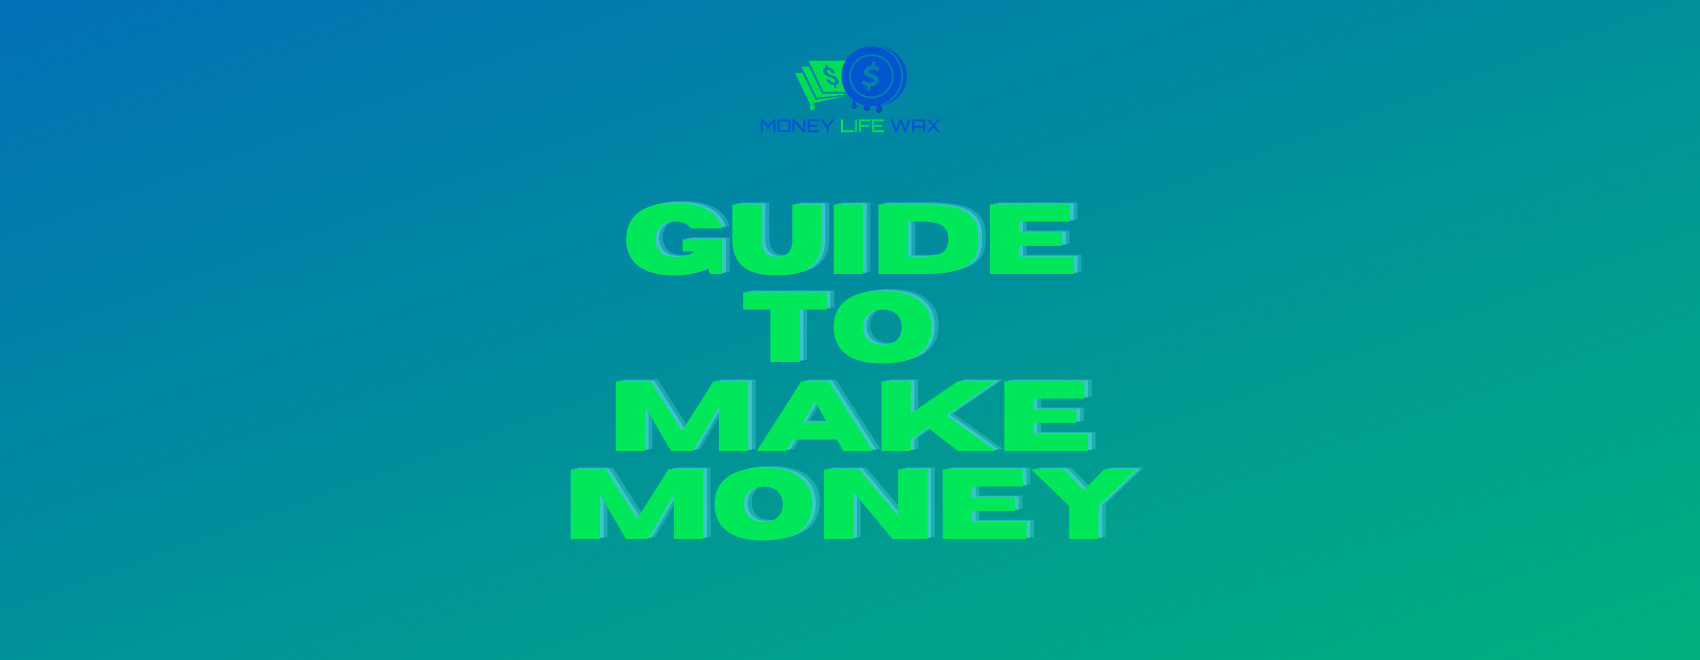 guide to make more money